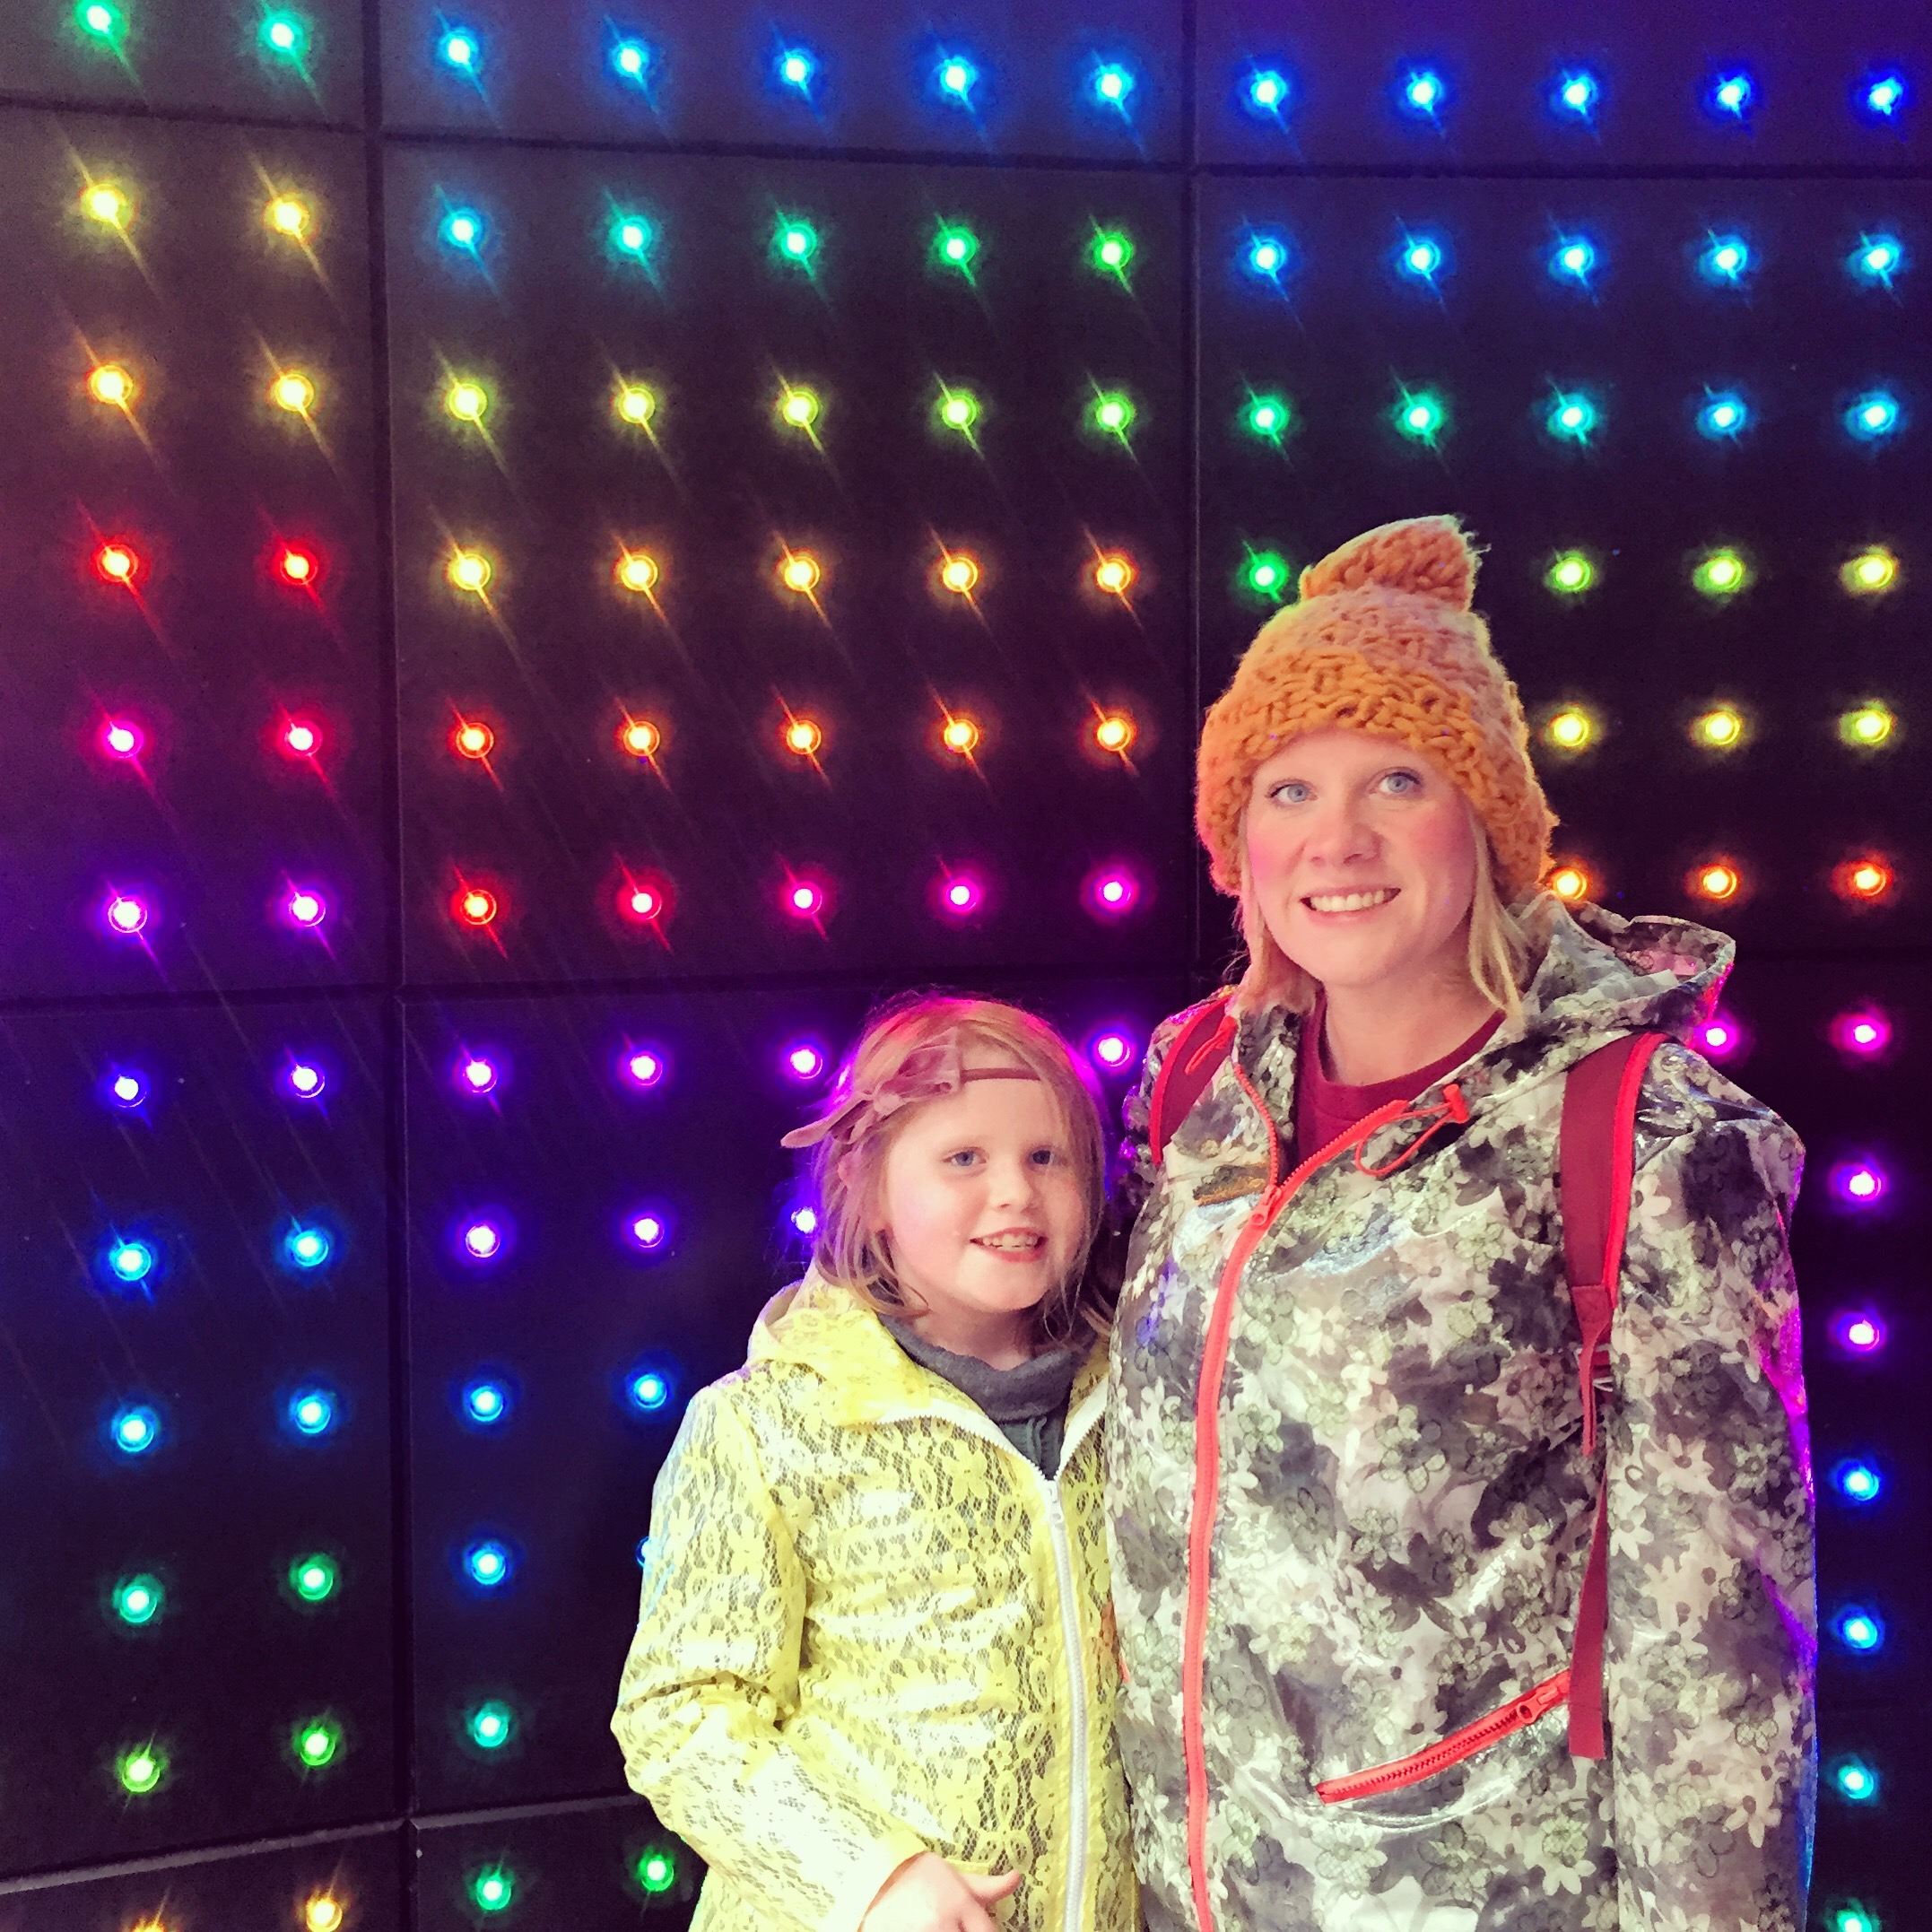 Image is a photograph of Amrick and her daughter wearing coats, stood in front of an LED wall of rainbow-coloured lights